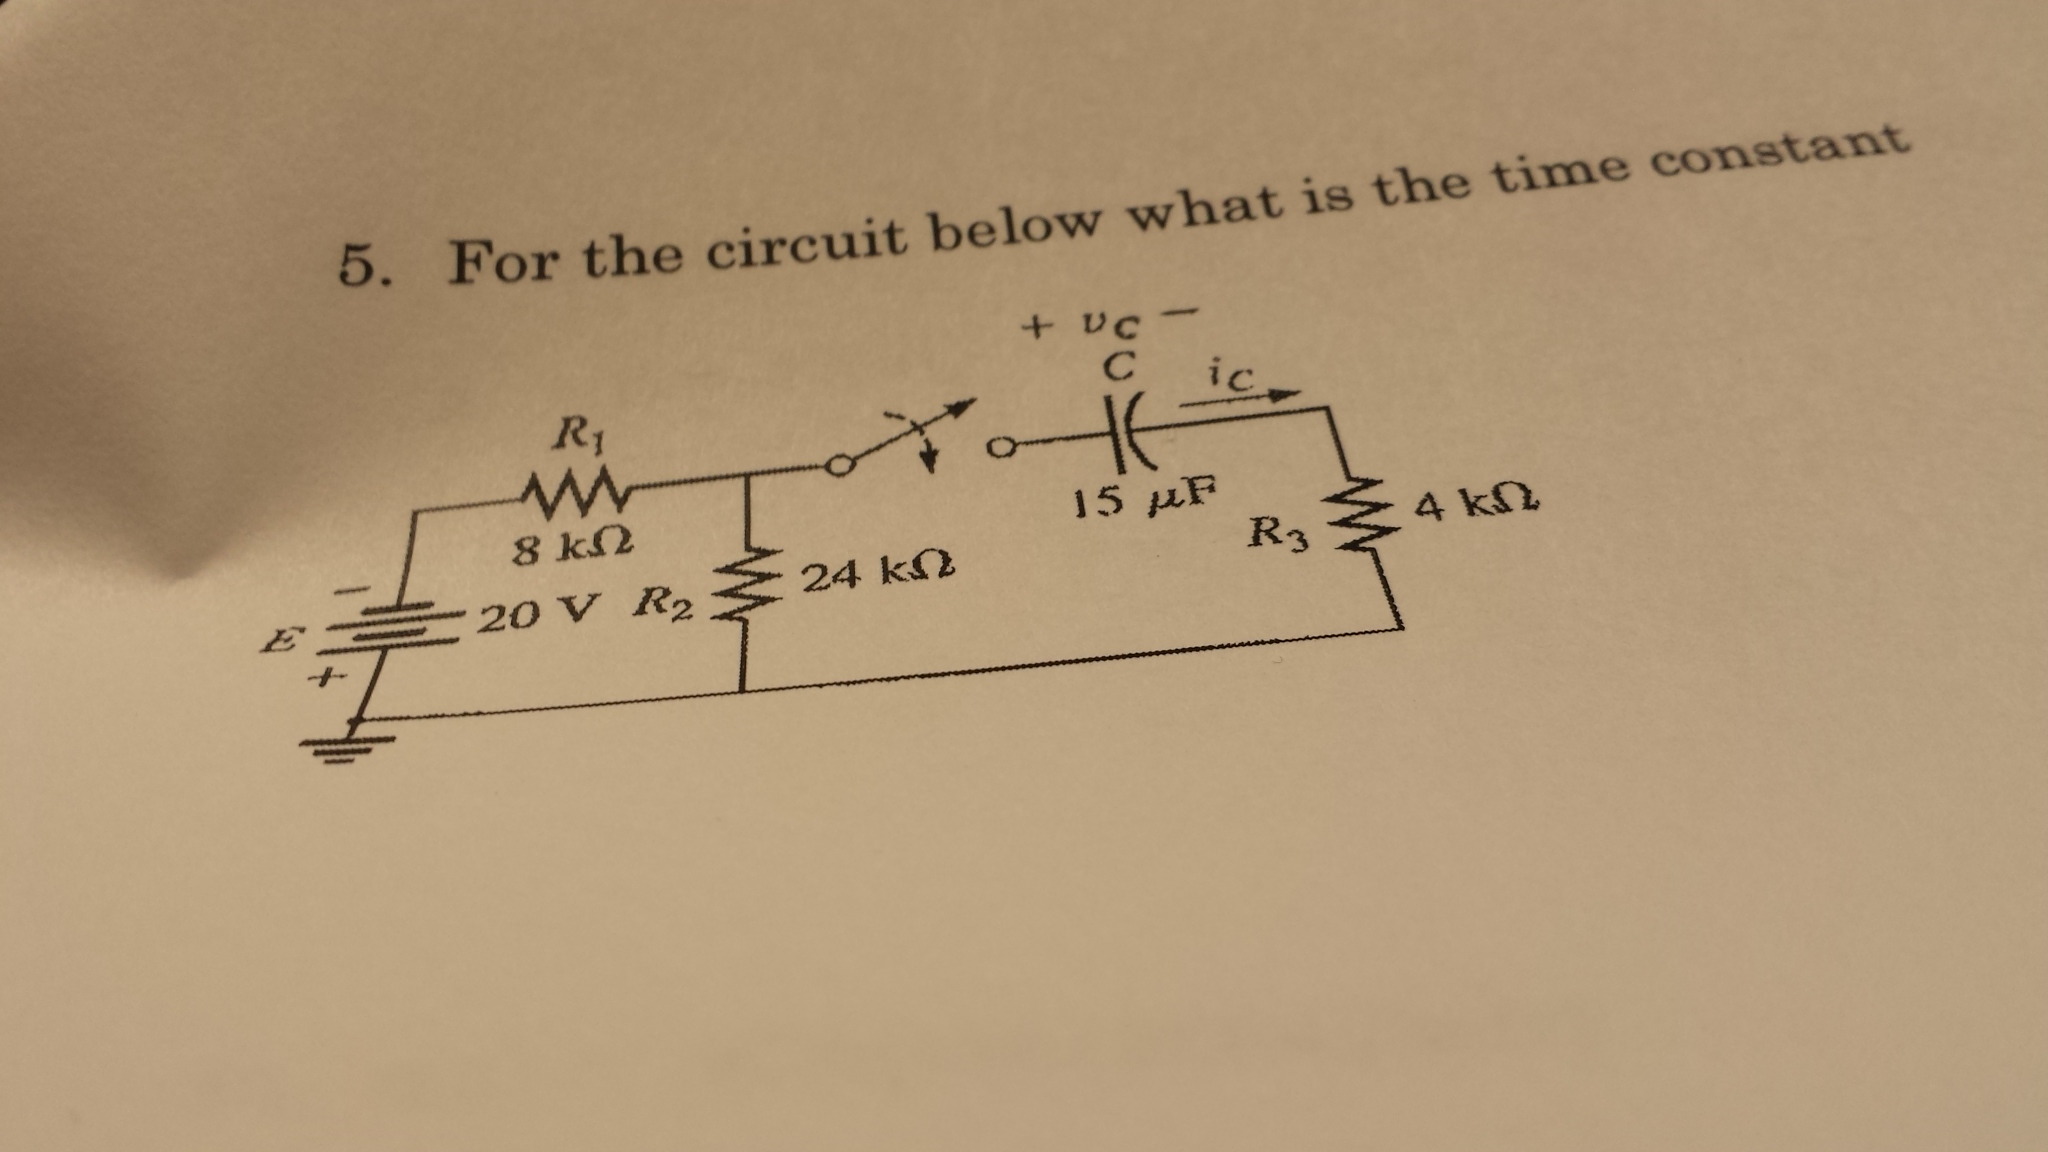 For the circuit below what is the time constant